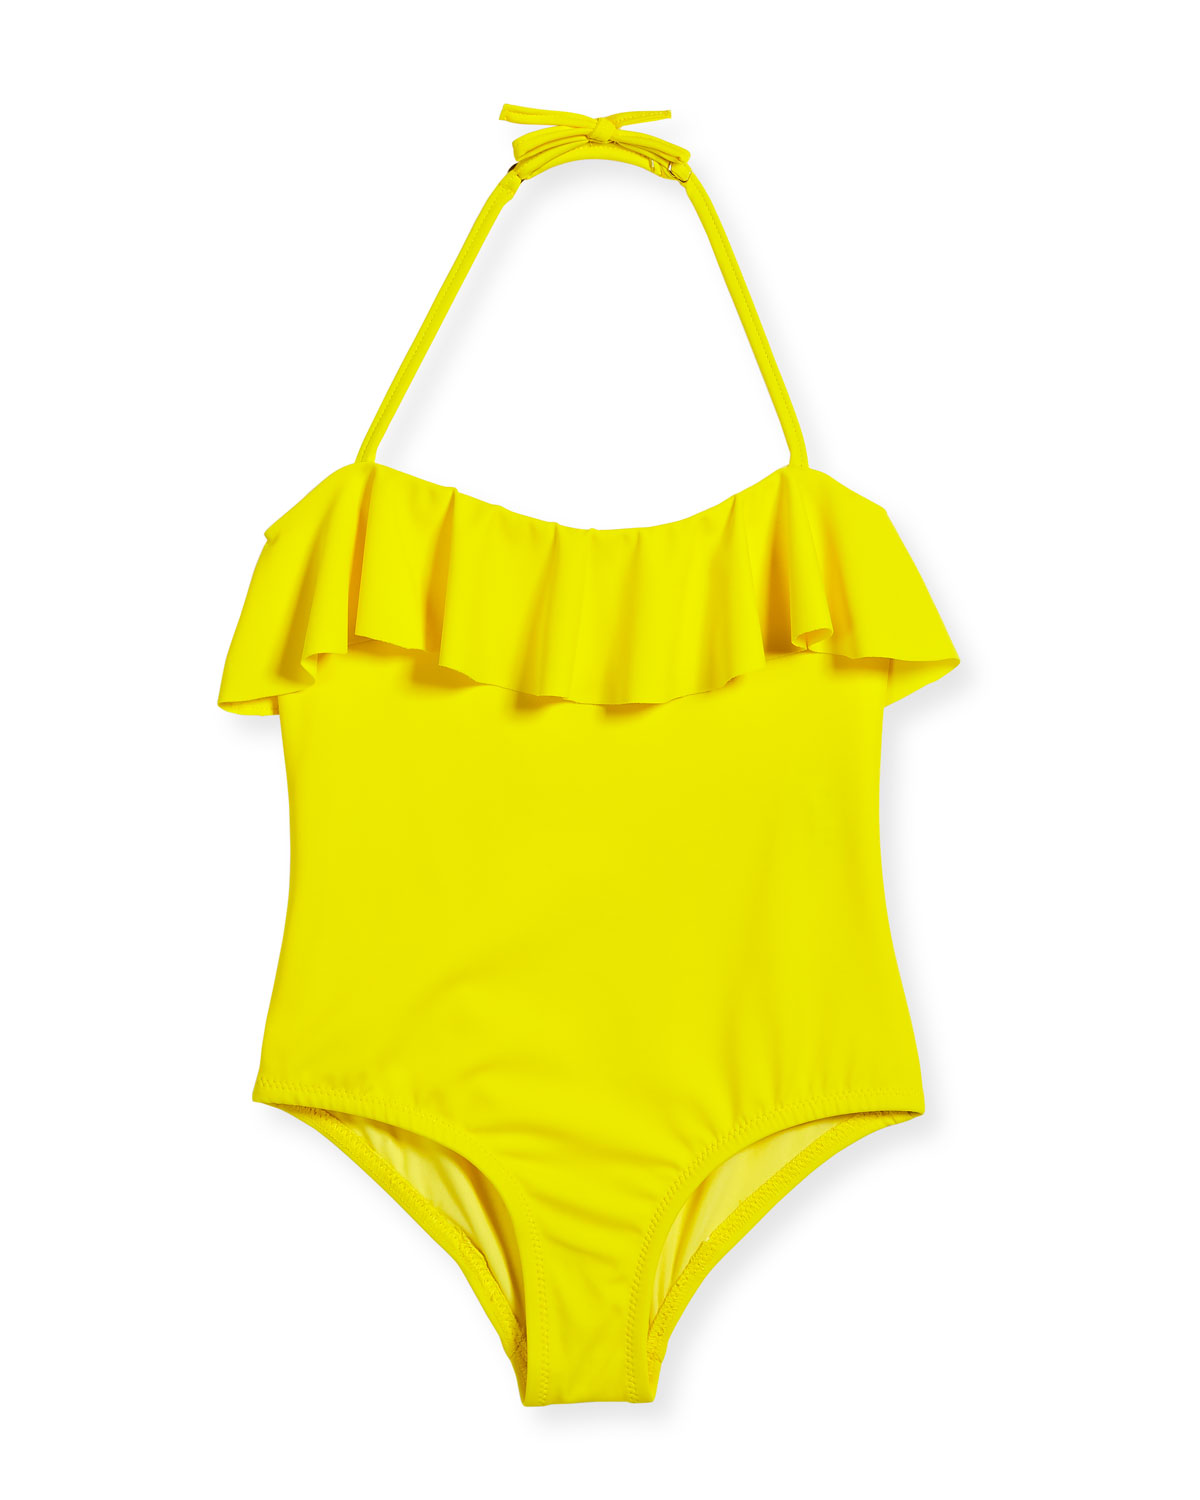 Ruffle Top One-Piece Swimsuit, Size 8-14